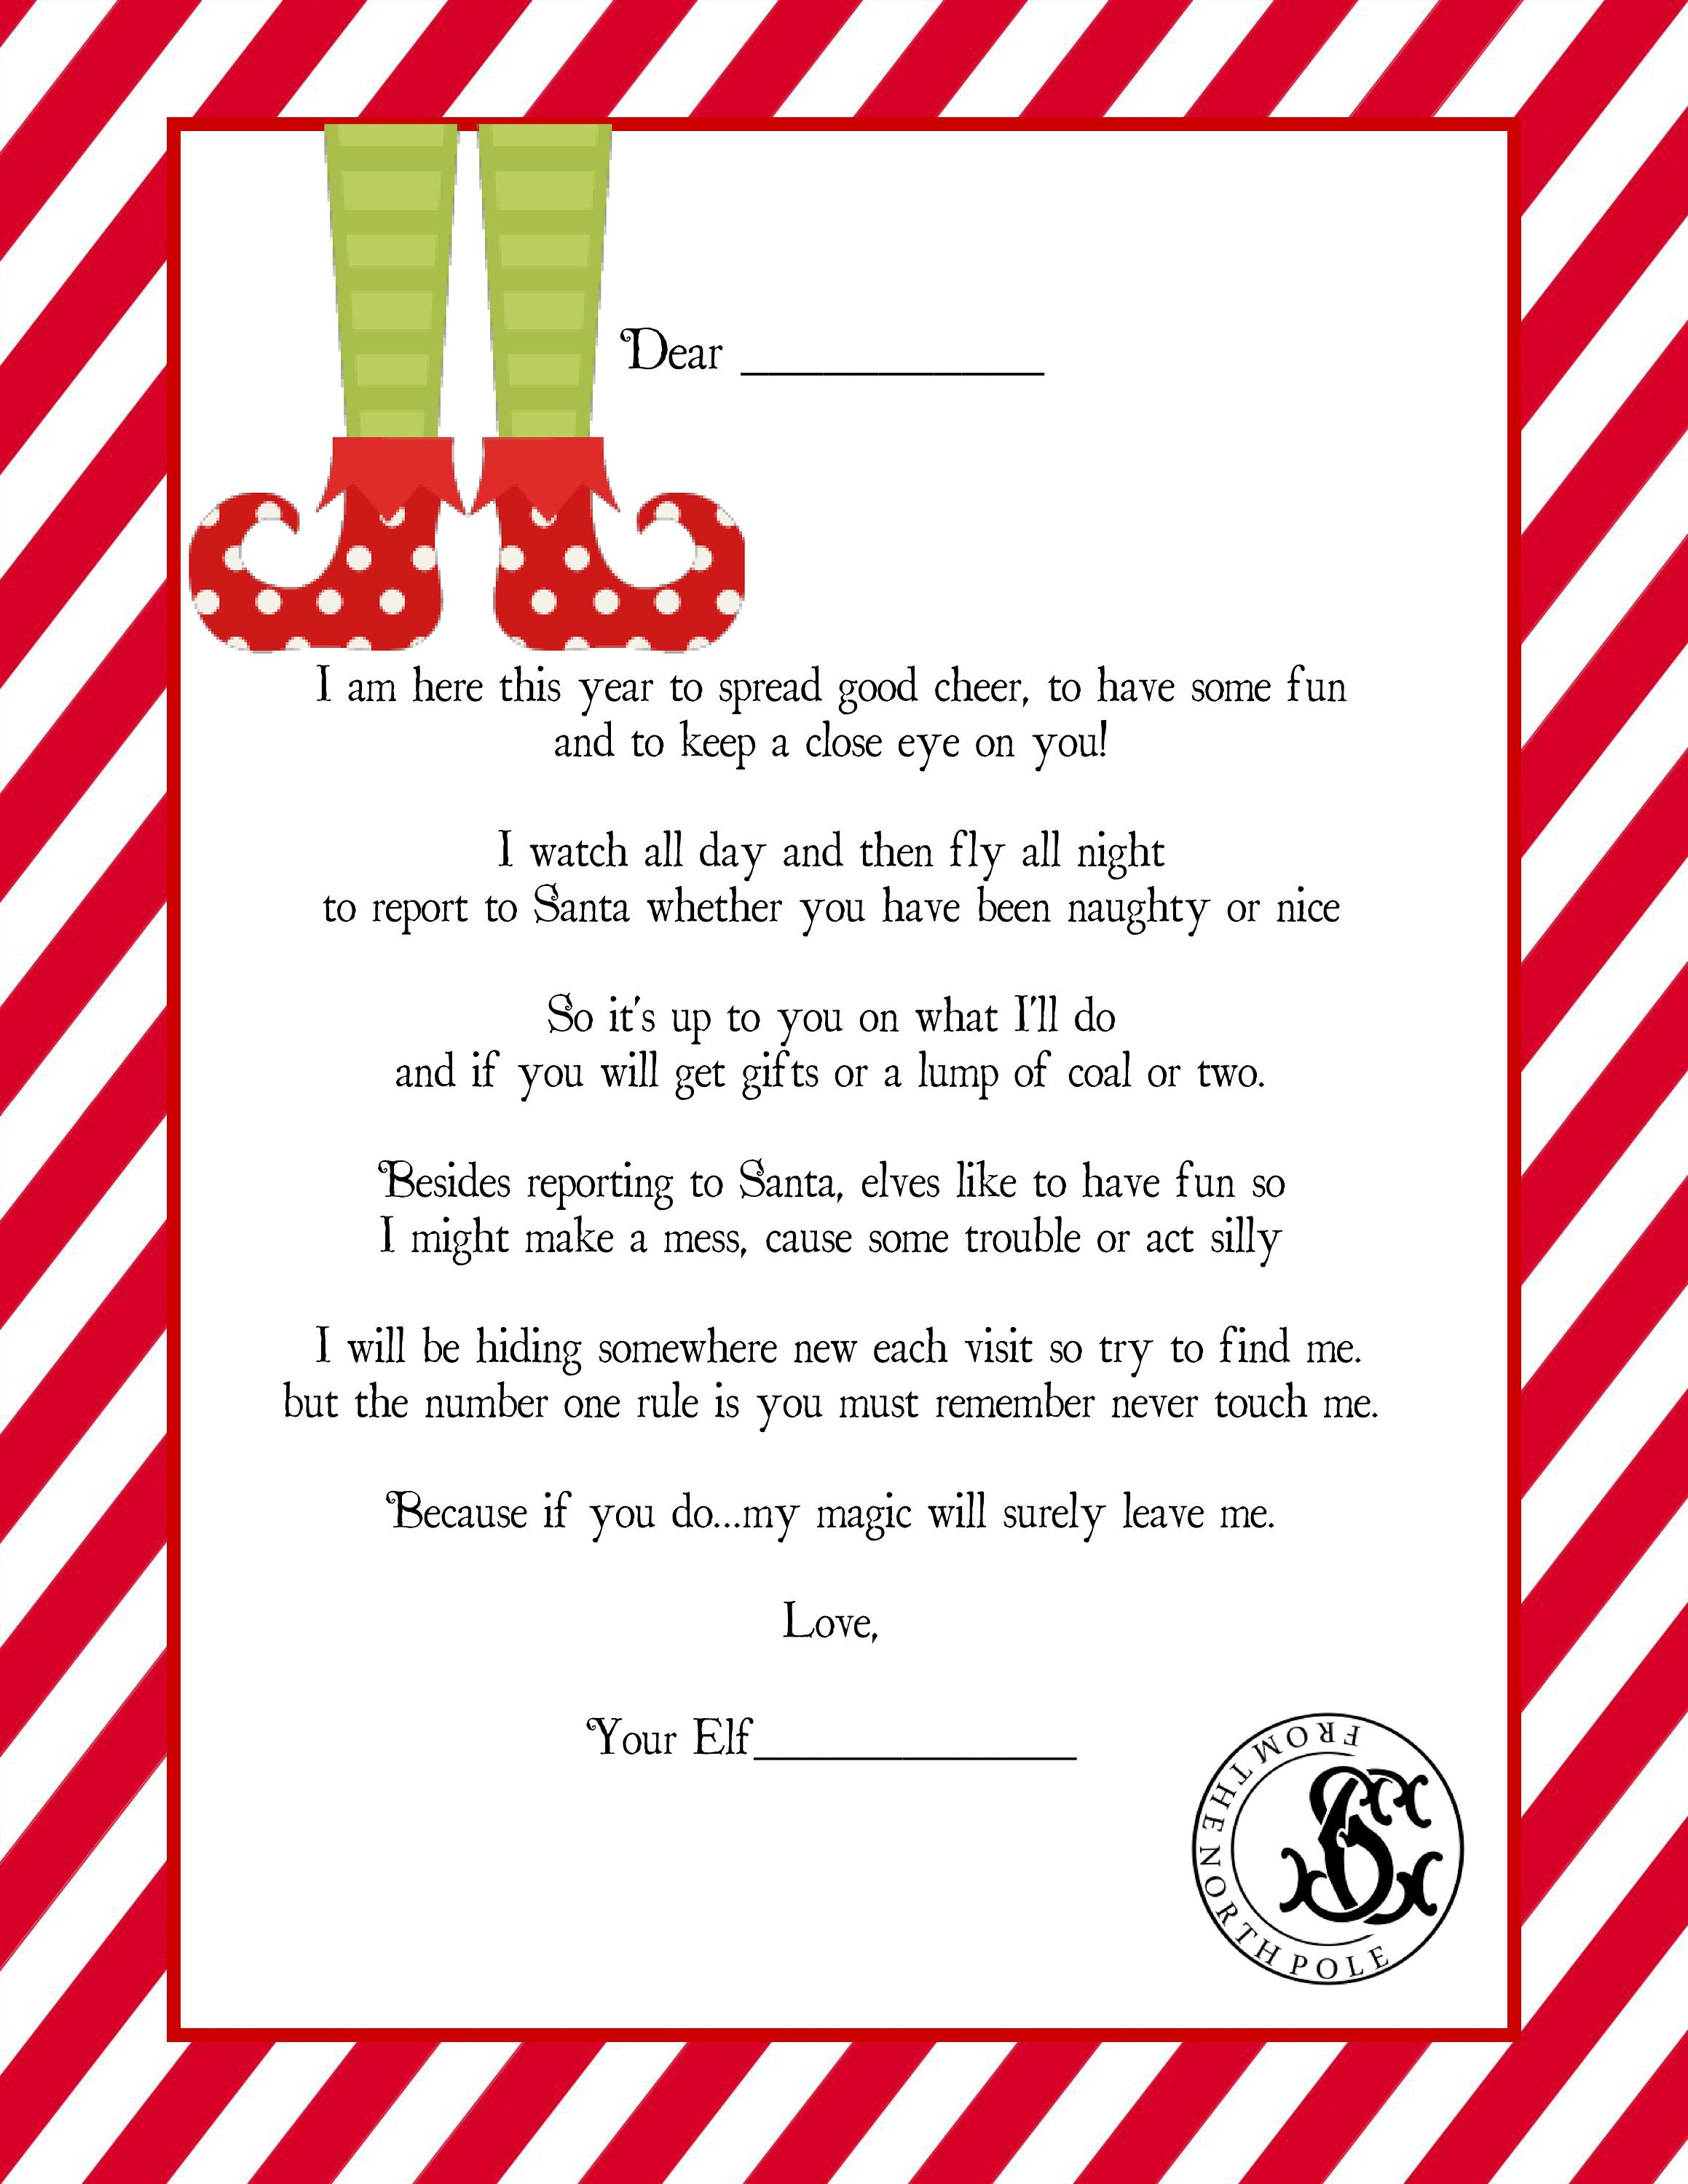 It's just an image of Breathtaking Letter From Elf on the Shelf Printable